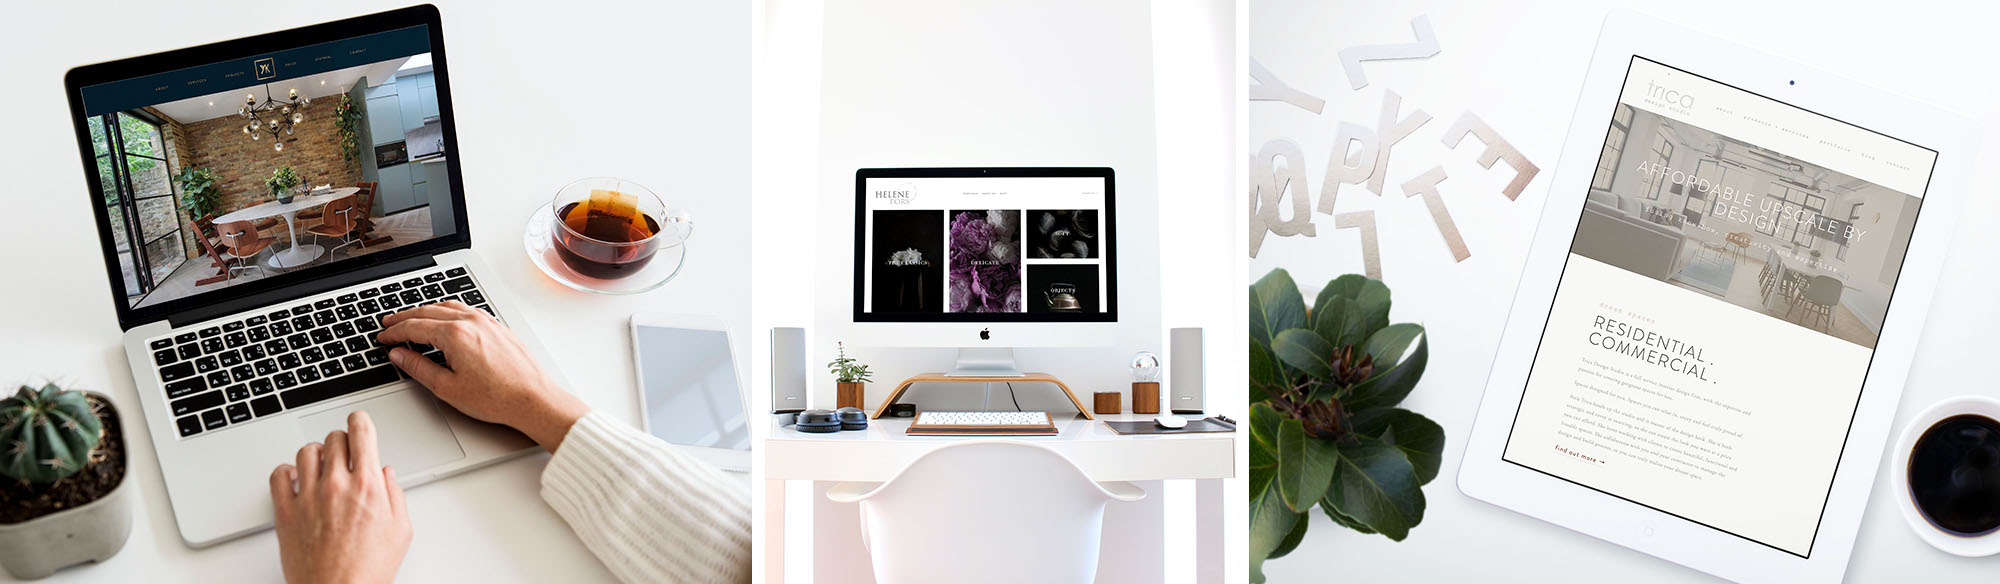 Featured Squarespace website design project